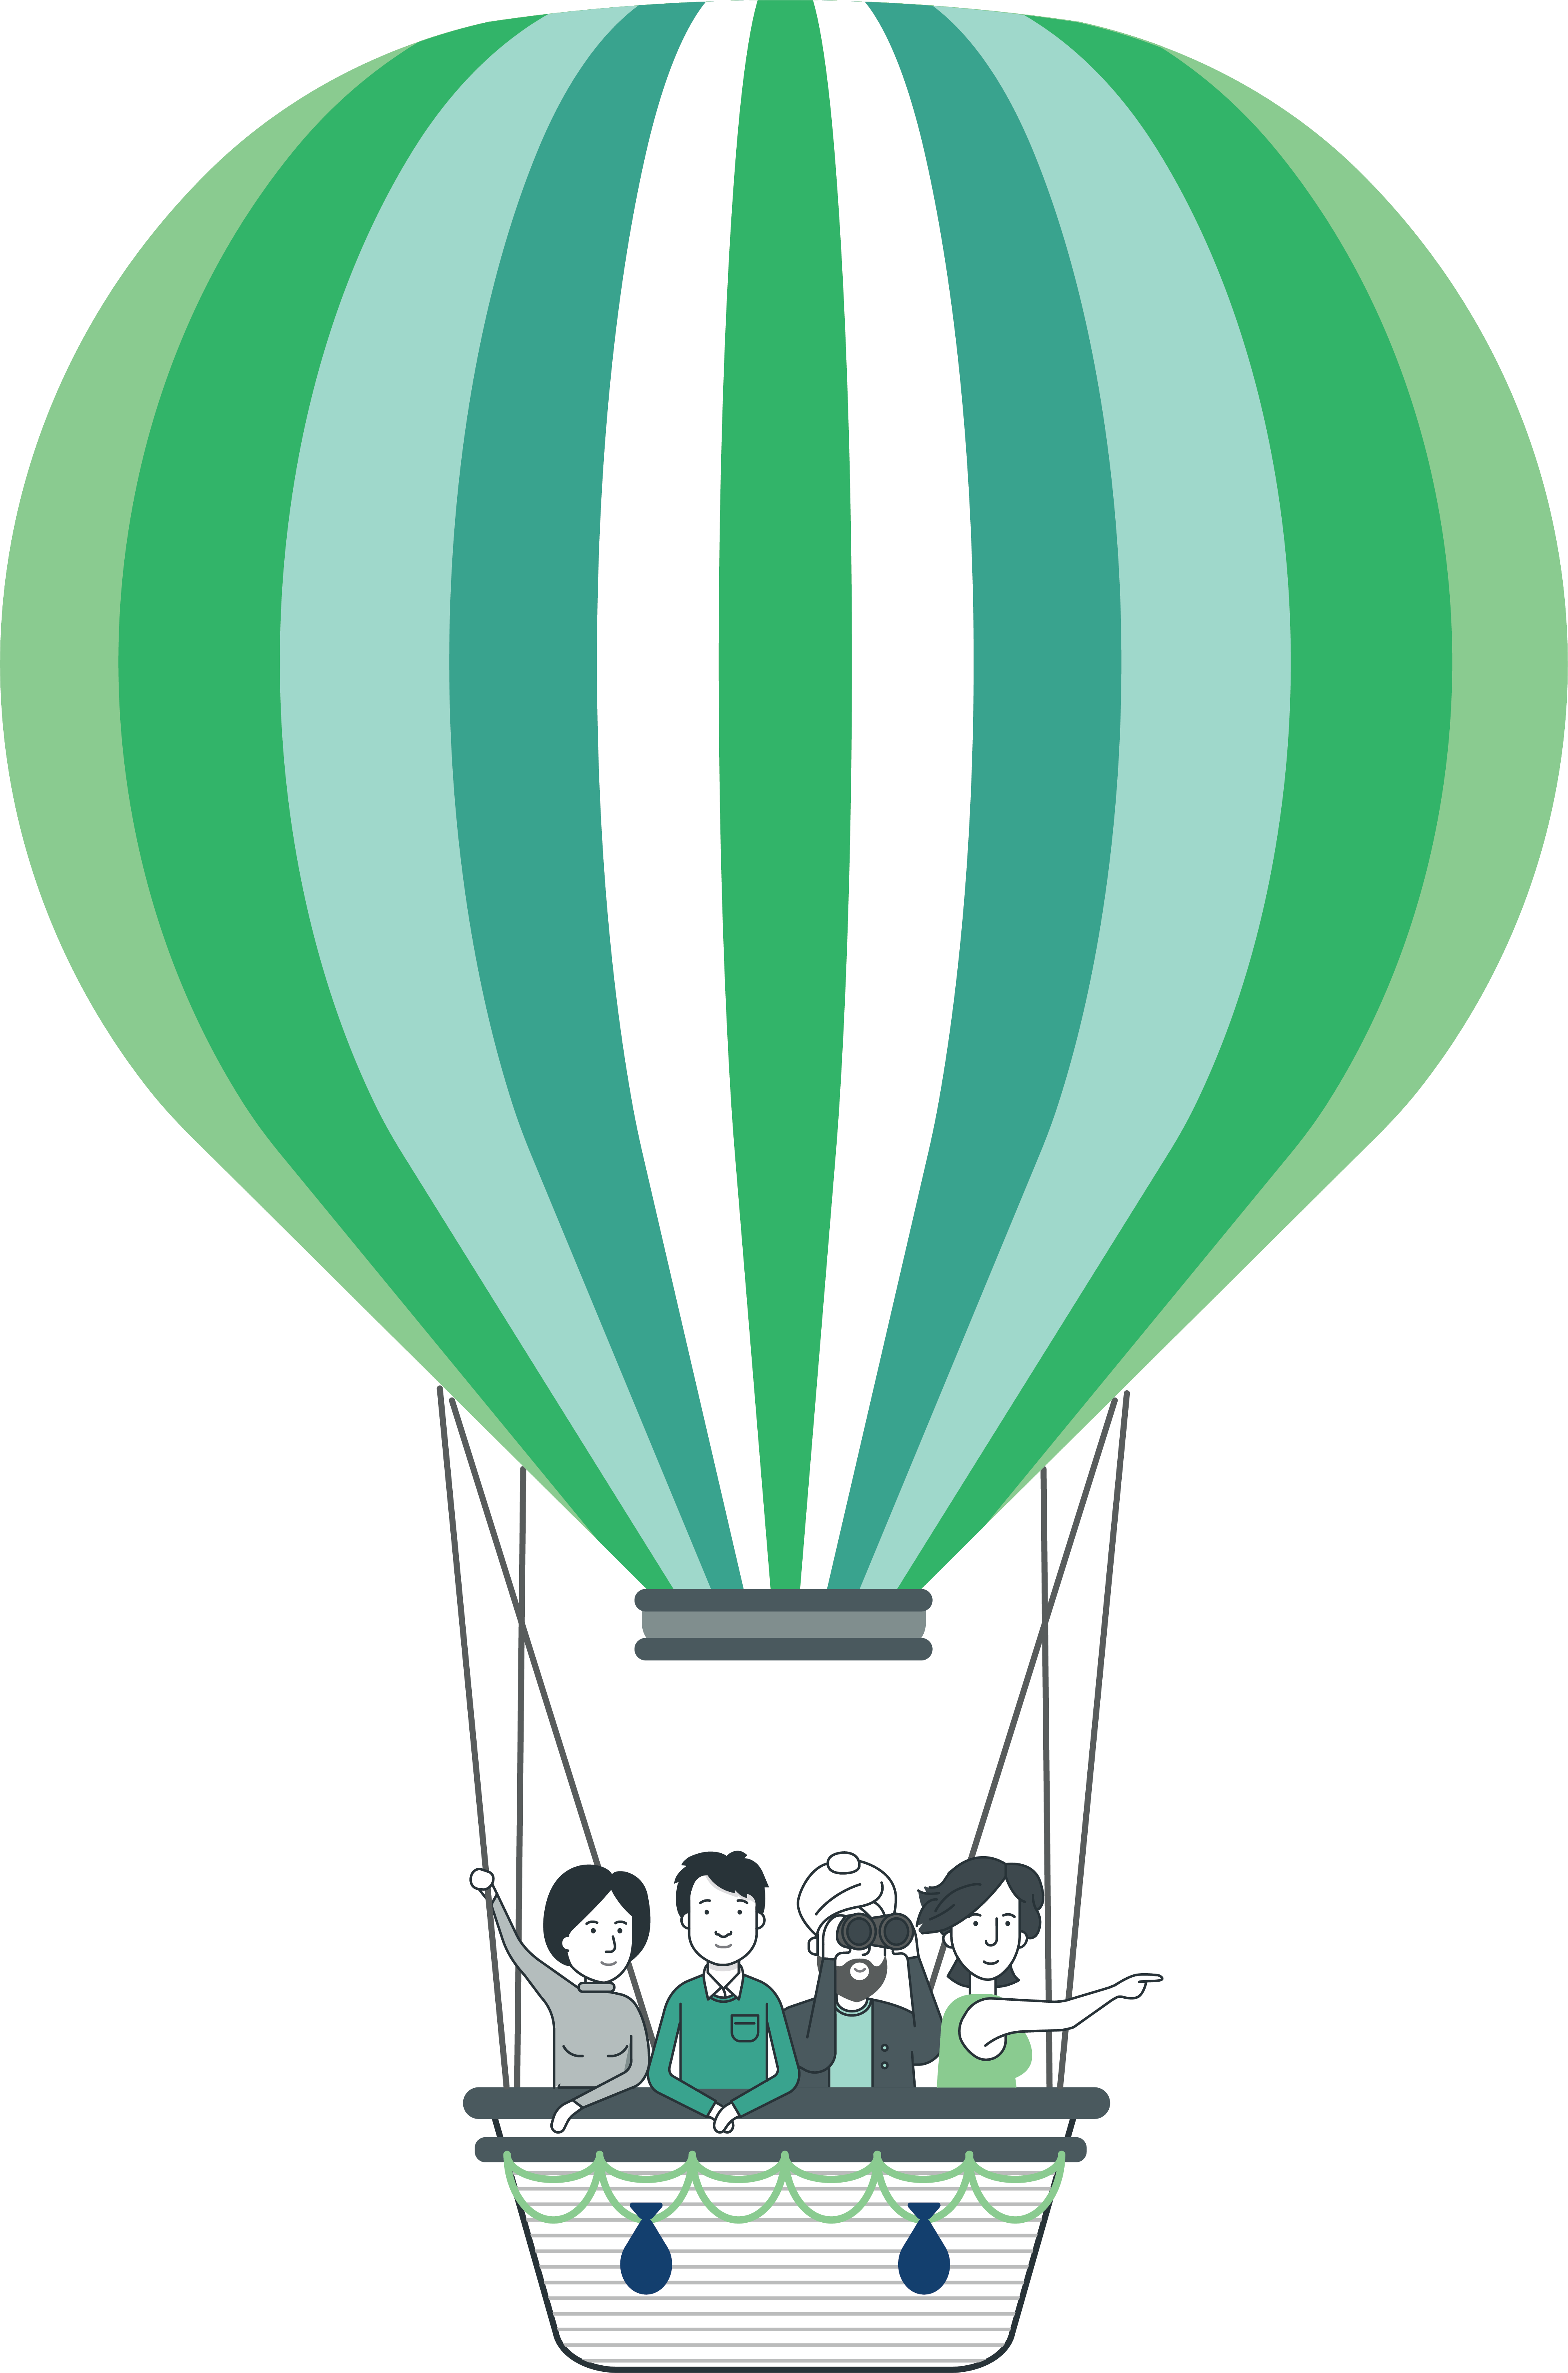 An image of 4 people in a hot air balloon